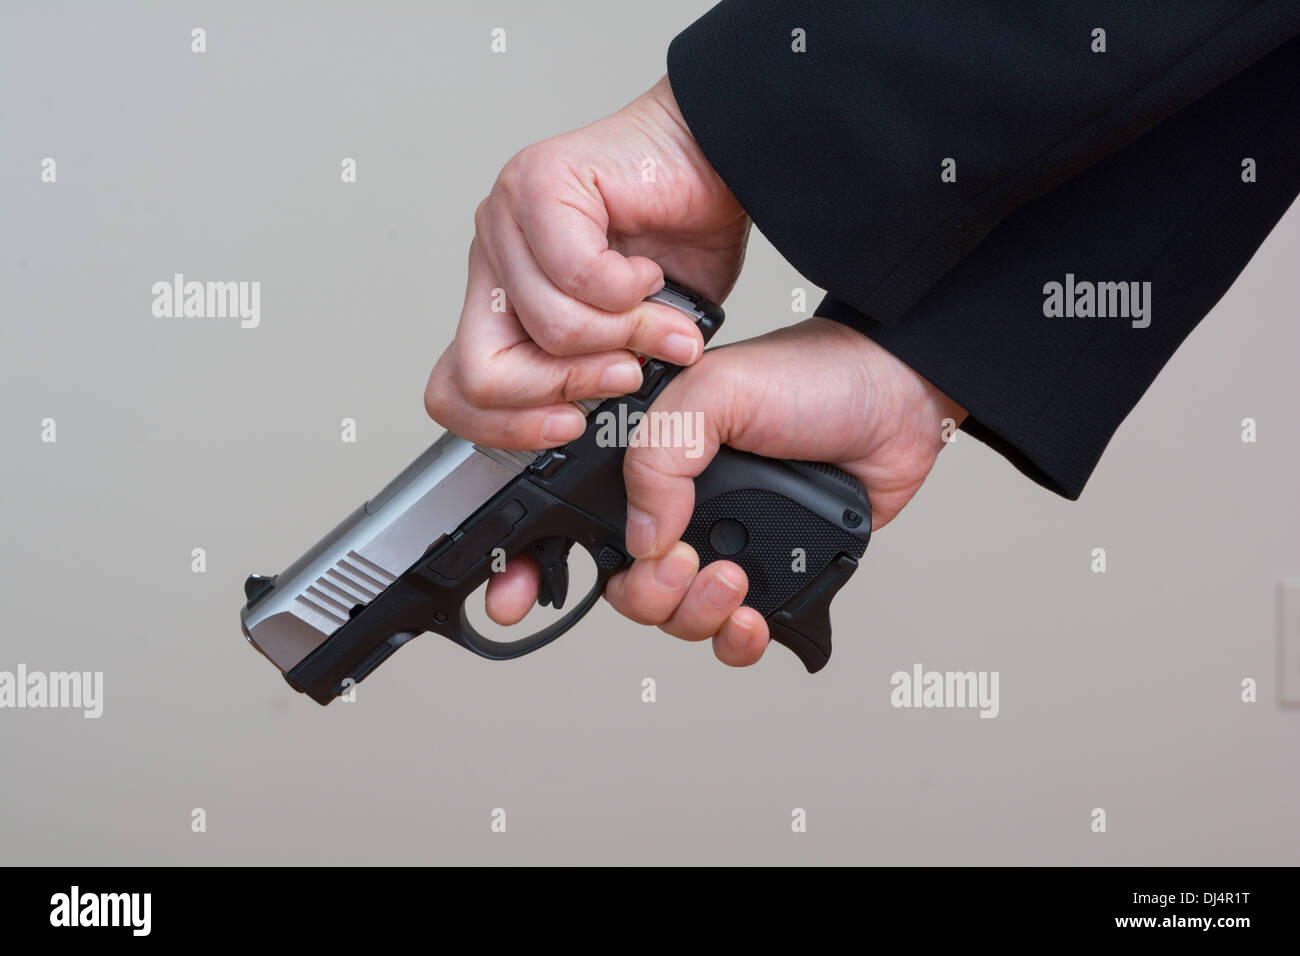 Cocking Gun Stock Photos & Cocking Gun Stock Images - Alamy